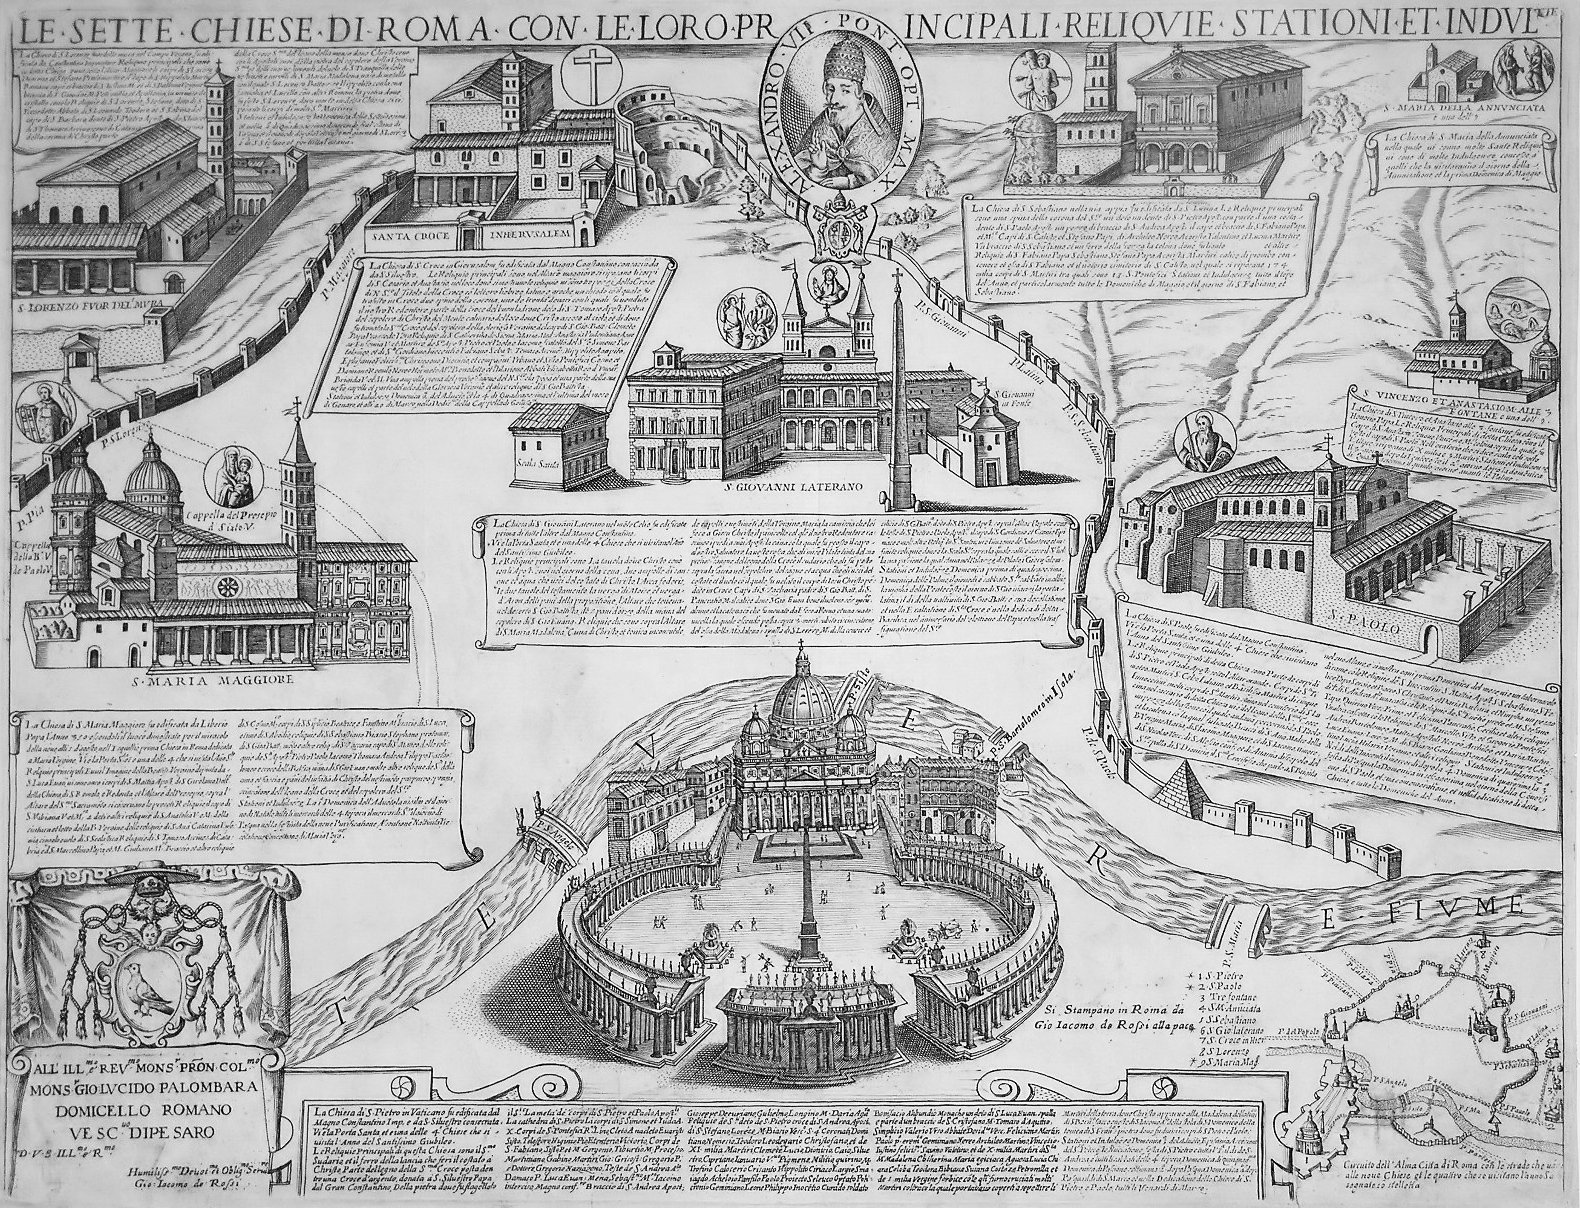 File:Seven Churches of Rome - Giacomo Lauro - 1599.jpg